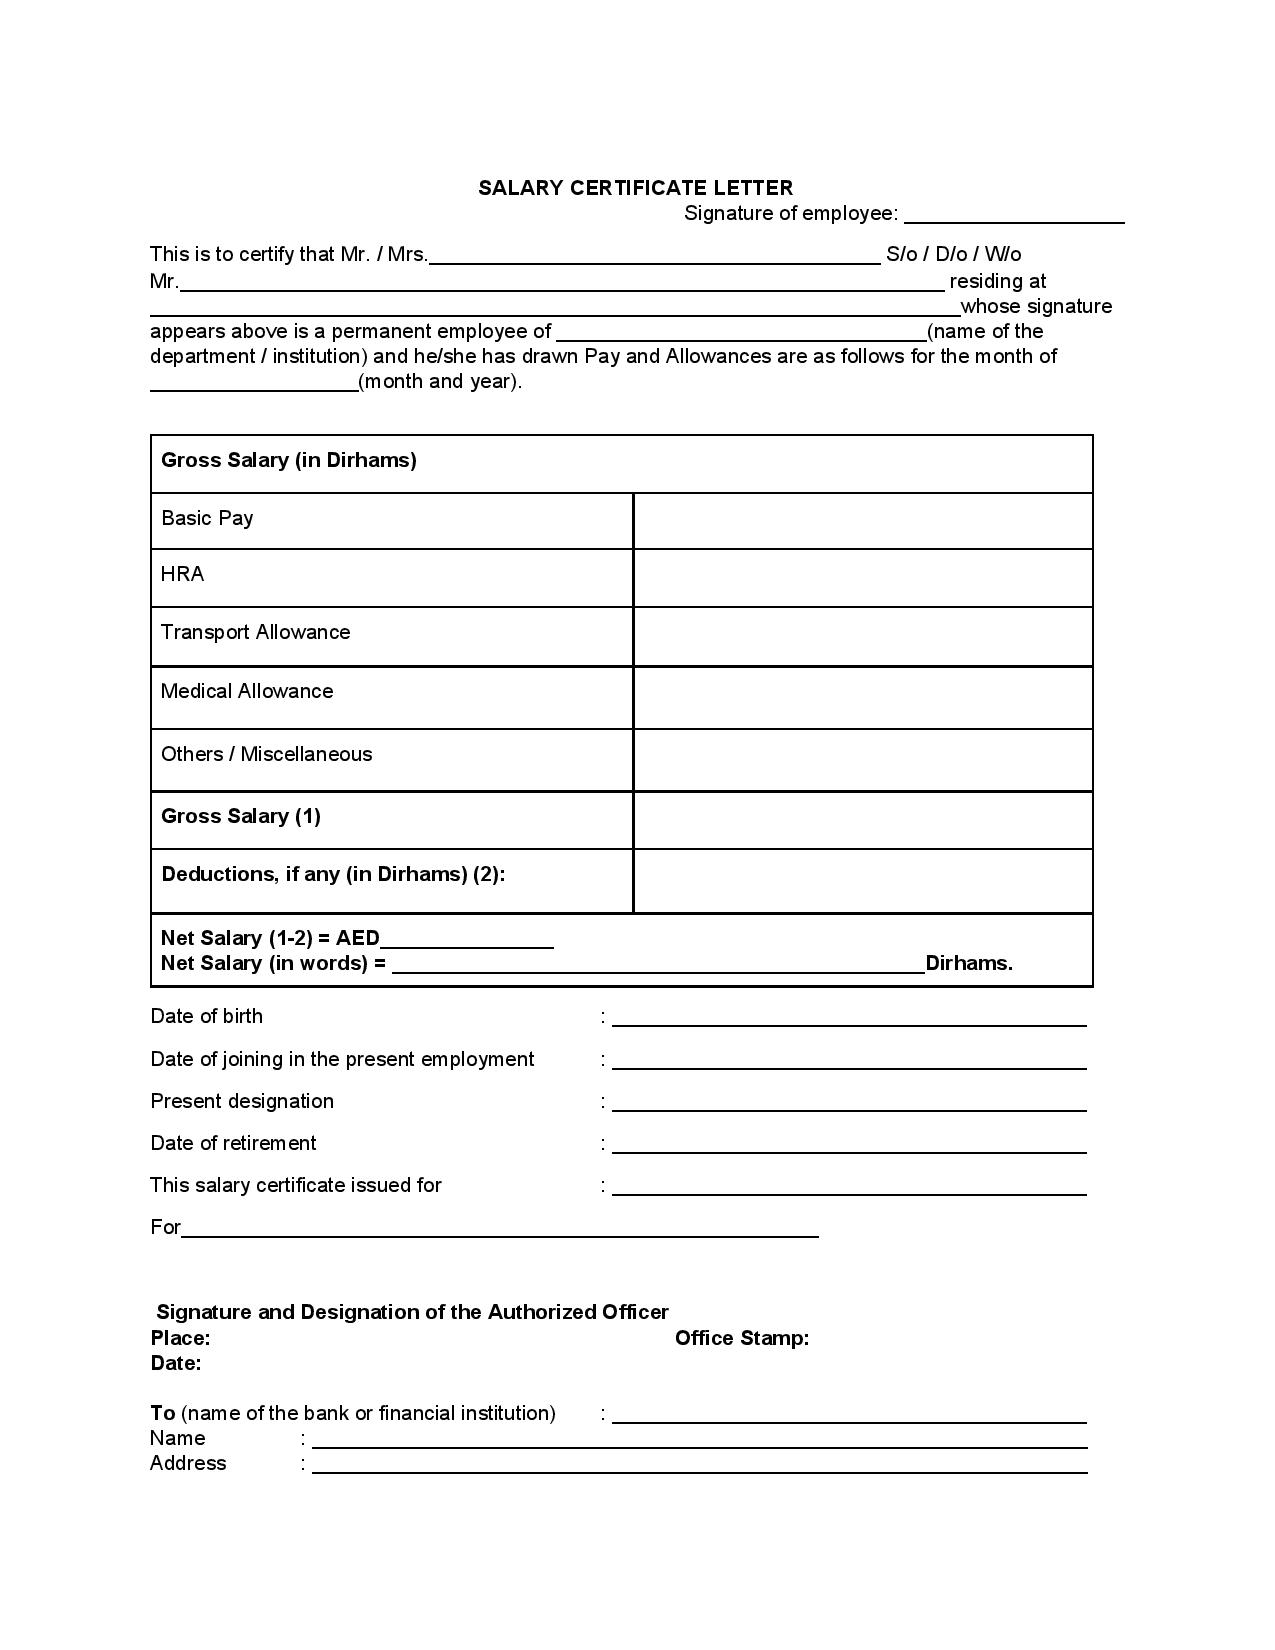 Salary Certificate Letter Template UAE